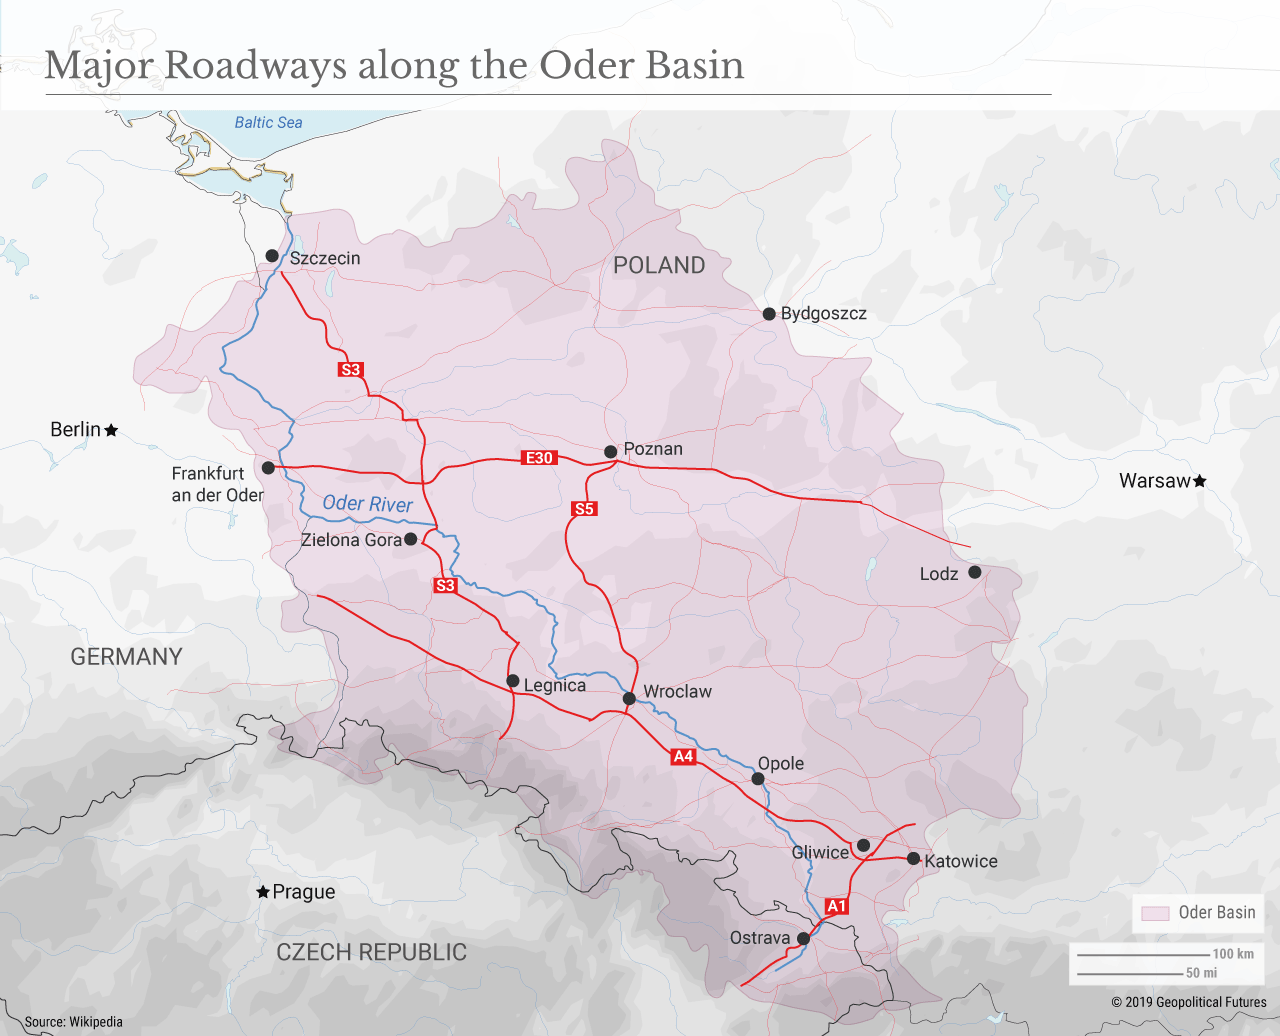 Major Roadways along the Oder Basin